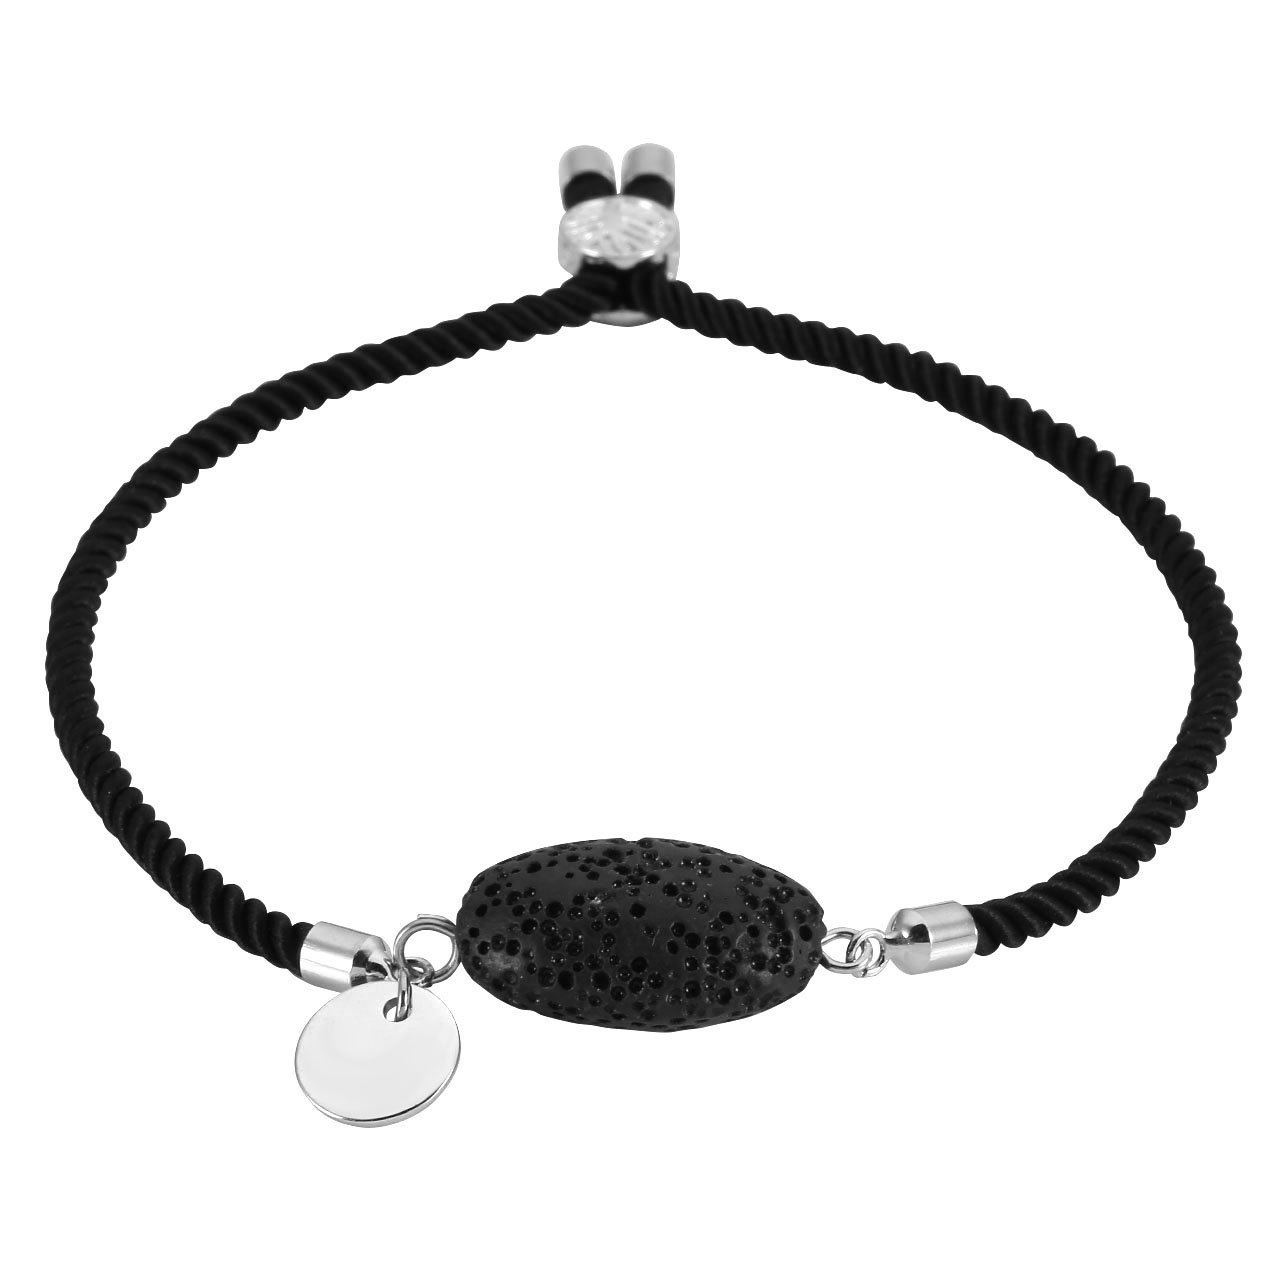 Top Plaza Custom Personalized Engraved Name Word Oval Lava Rock Stone Essential Oil Diffuser Adjustable Rope Bracelet for Womens Girls - Black